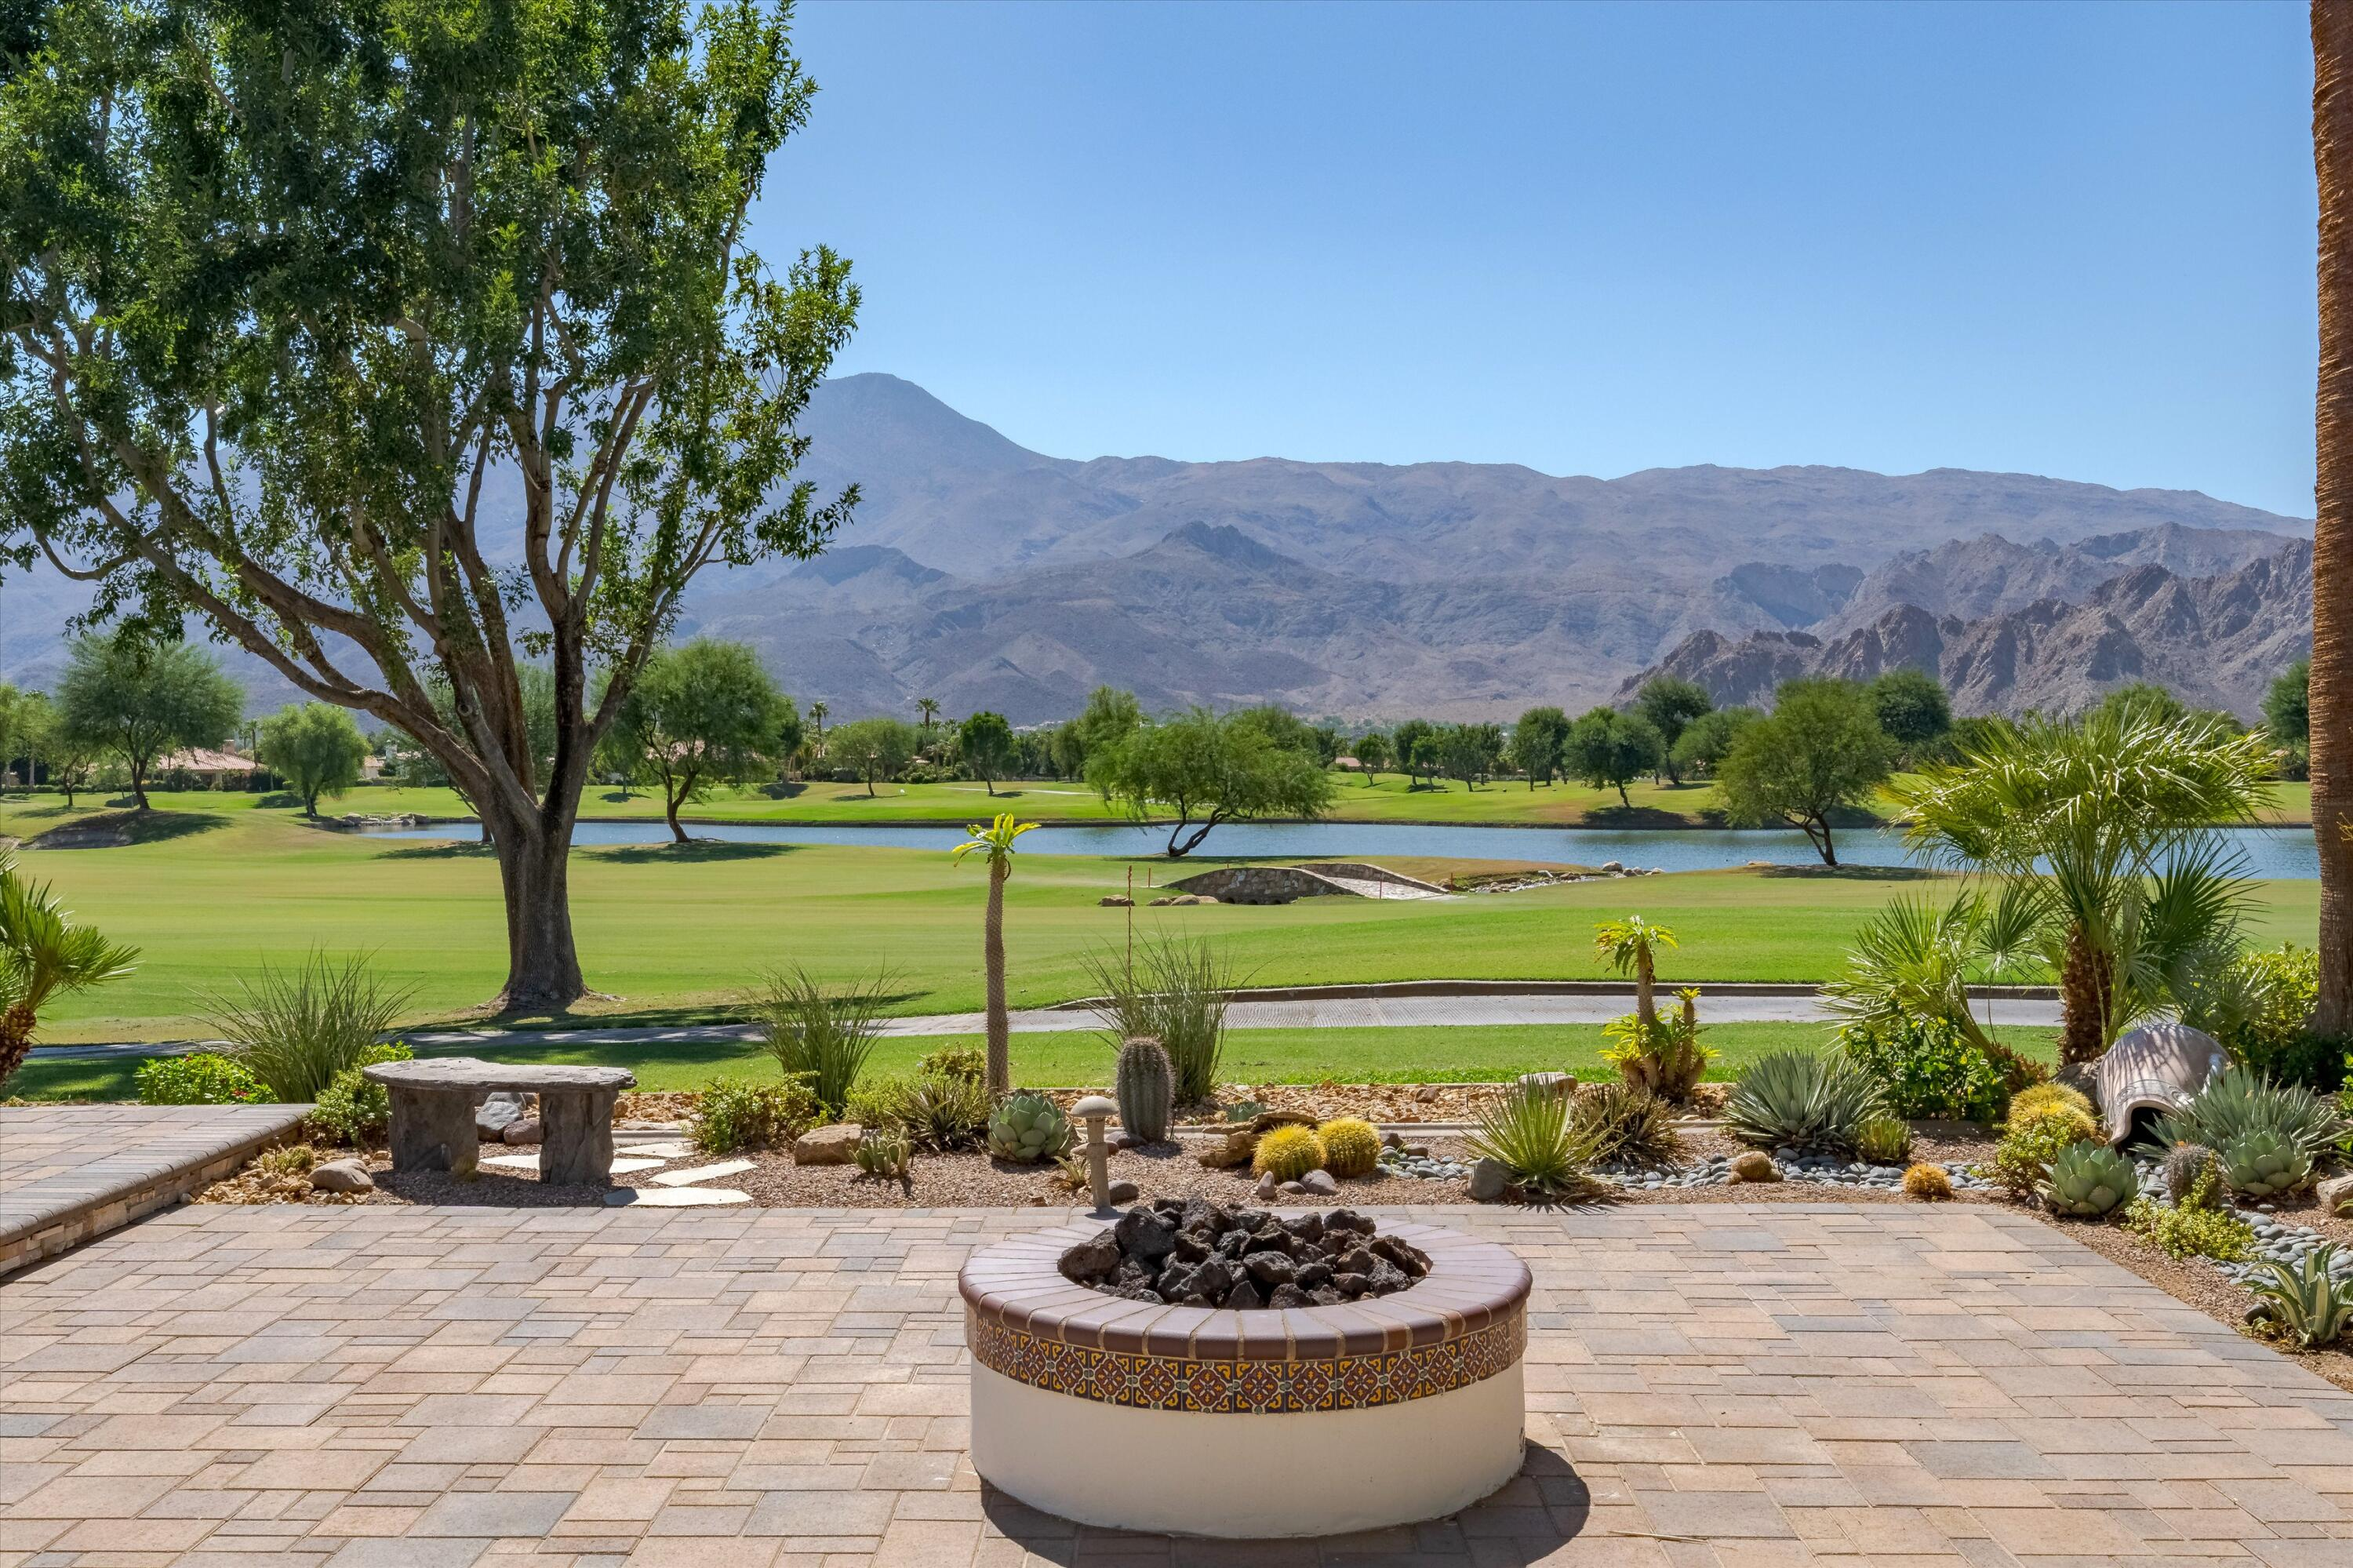 The Perfect 10! A magnificent southern view of the lake, mountains, and the 1st hole of the private Weiskopf Golf Course which is truly captivating. This luxurious freshly painted showcase home features 4,621 sq ft, 3bdrms, 4.5 ba, including a separate entry casita, plus media room w/ projector and a private office.  Exceptional interior amenities throughout including Fleetwood sliding glass doors, LED lighting, Travertine Flooring, built-ins, wine room, gourmet granite island kitchen, grand master bedroom suite, Enviroblind roll down sun/security shades, and more. Beautifully appointed with designer furnishings included. The resort-style backyard is breathtaking with covered patio room with BBQ and outdoor kitchen, fire pit, sculpture garden, large pool/spa, and cozy entry courtyard with fireplace, with pavers front-back, and side.  The garage features epoxy garage floors and an Electric vehicle charging plug (230V). You won't find a location to compare! Offered furnished per inventory.